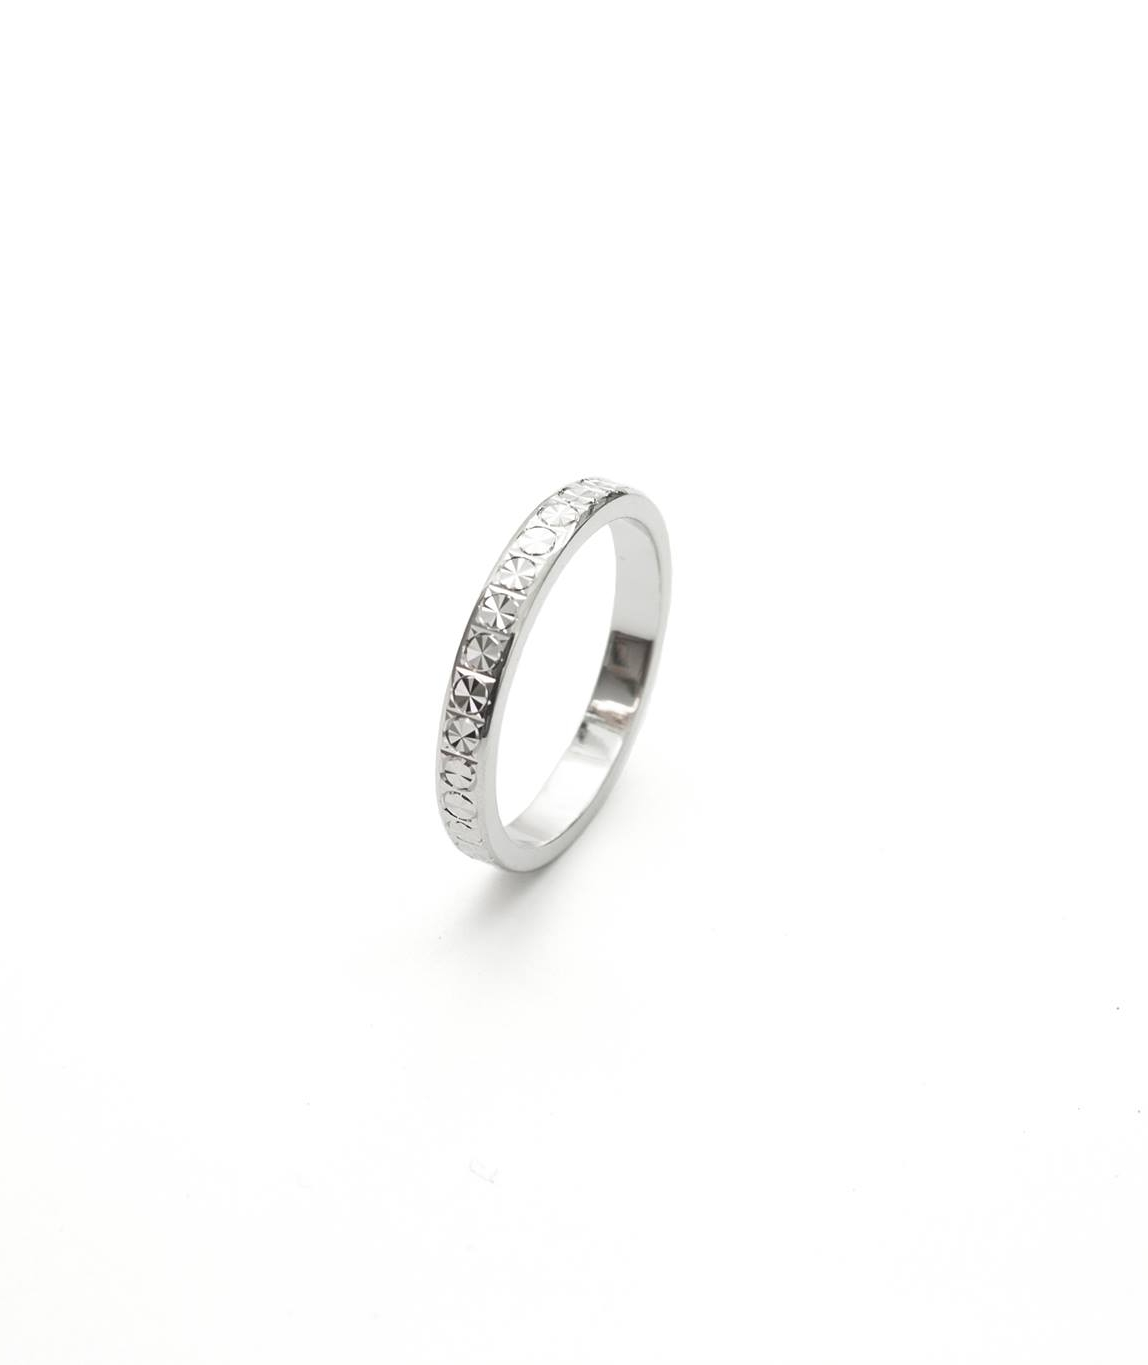 Alliance Diamond Cut en or blanc 14K